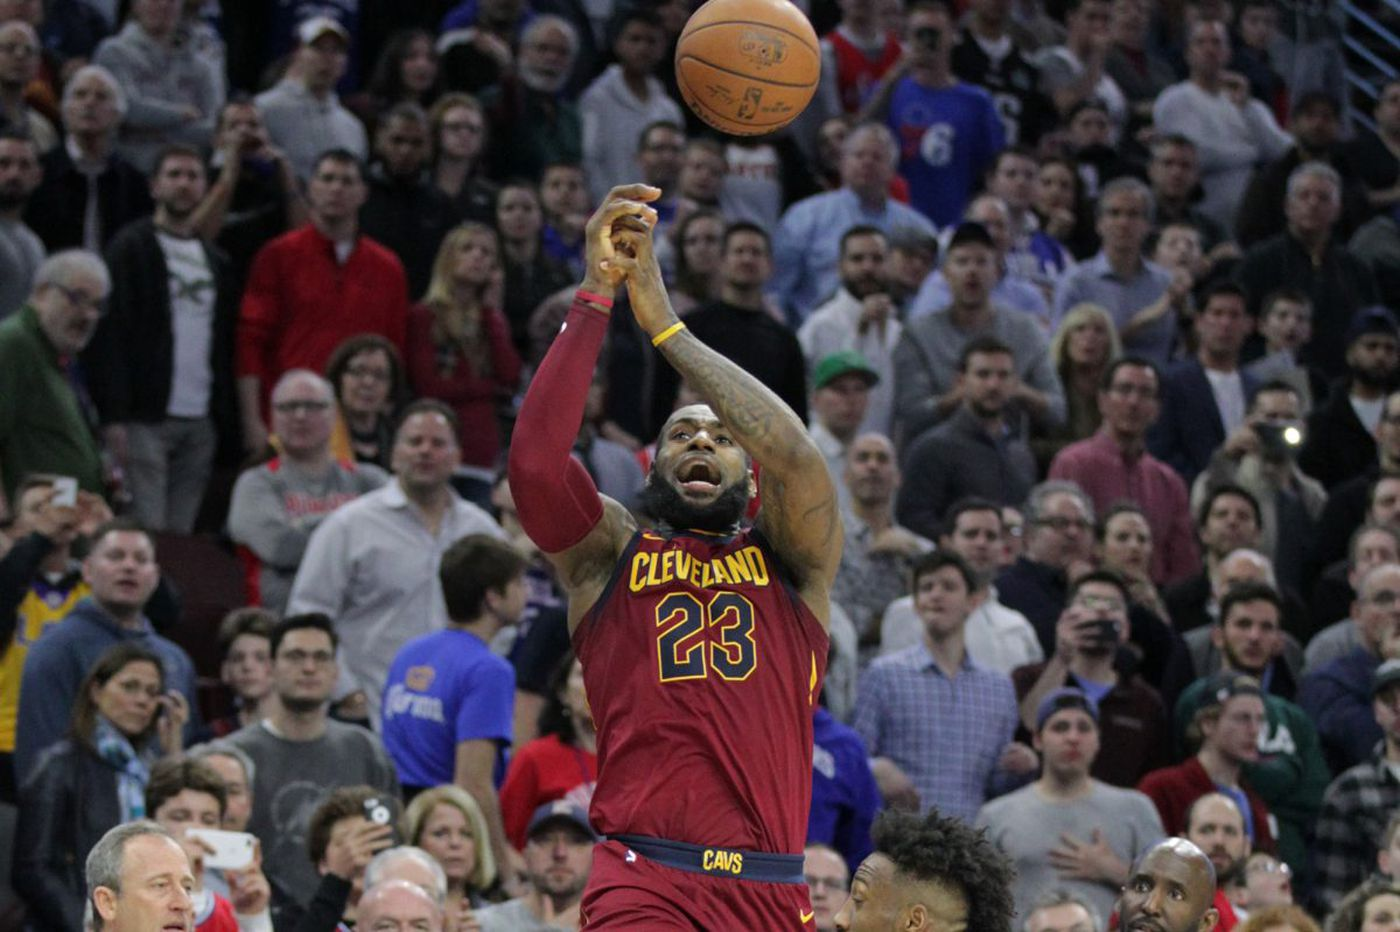 Sixers biggest prize: Postponing a playoff date with LeBron James, Cavaliers | David Murphy